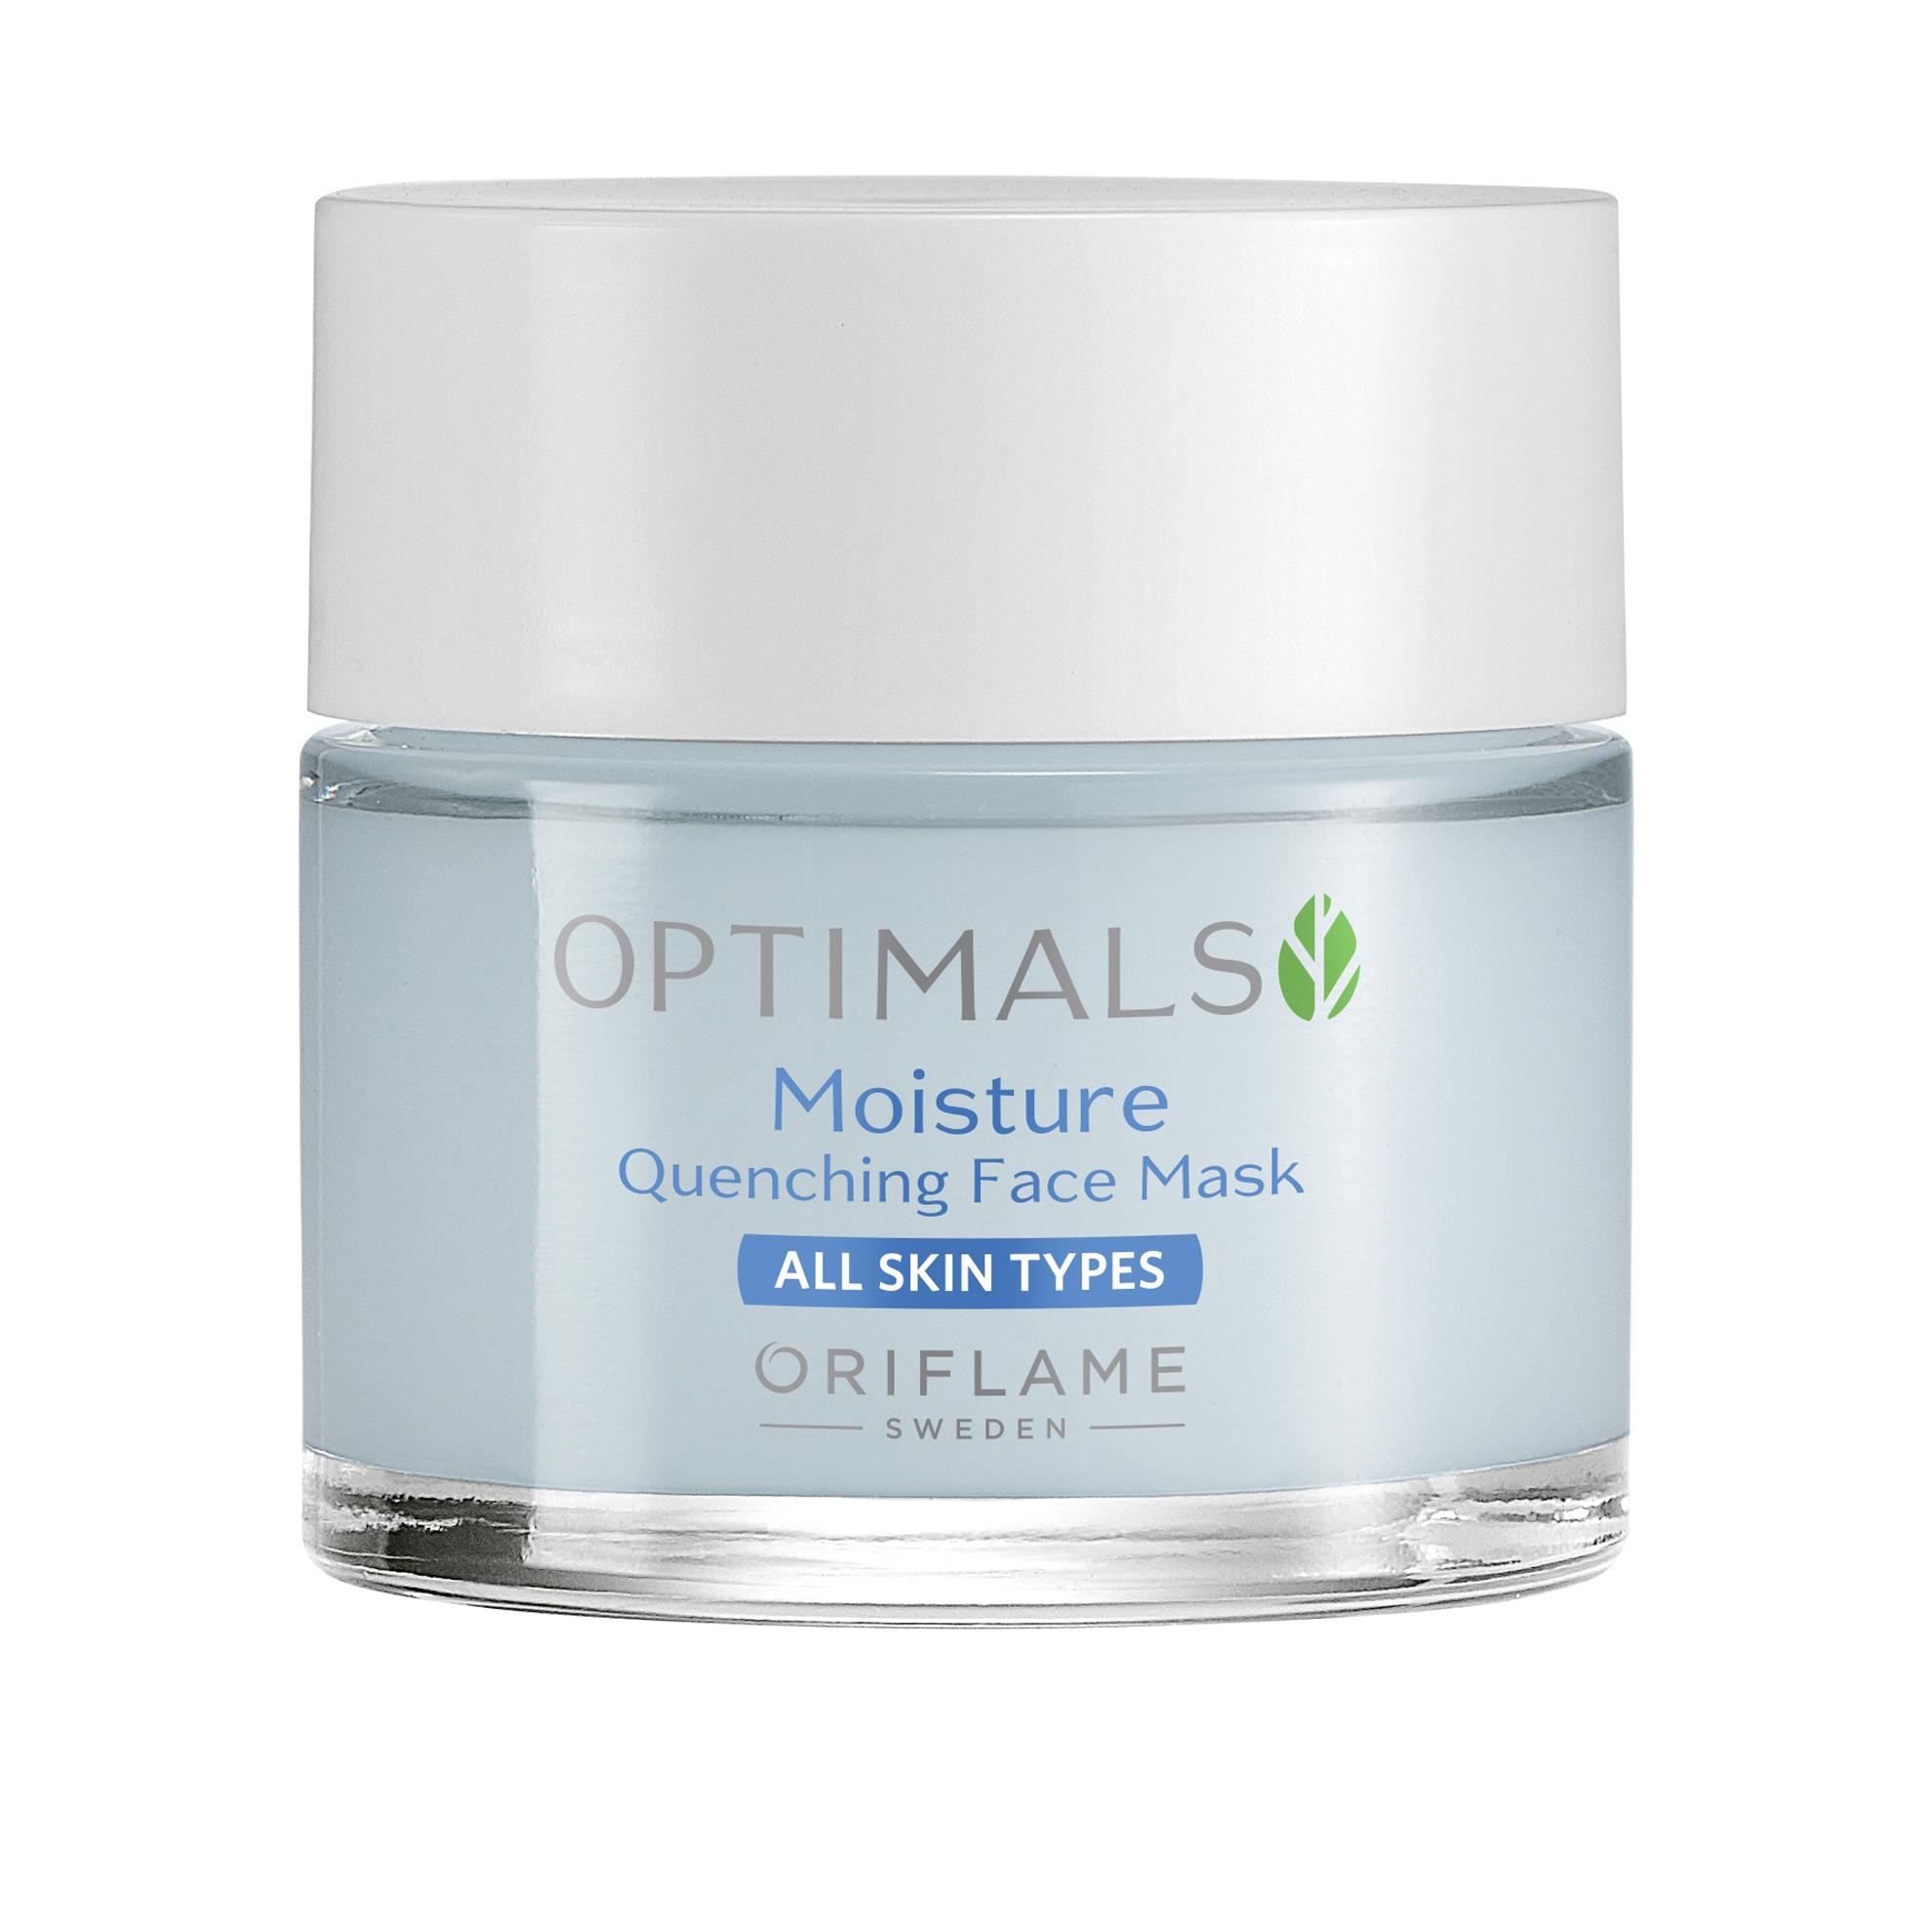 Optimals Moisture Quenching hidratáló arcmaszk